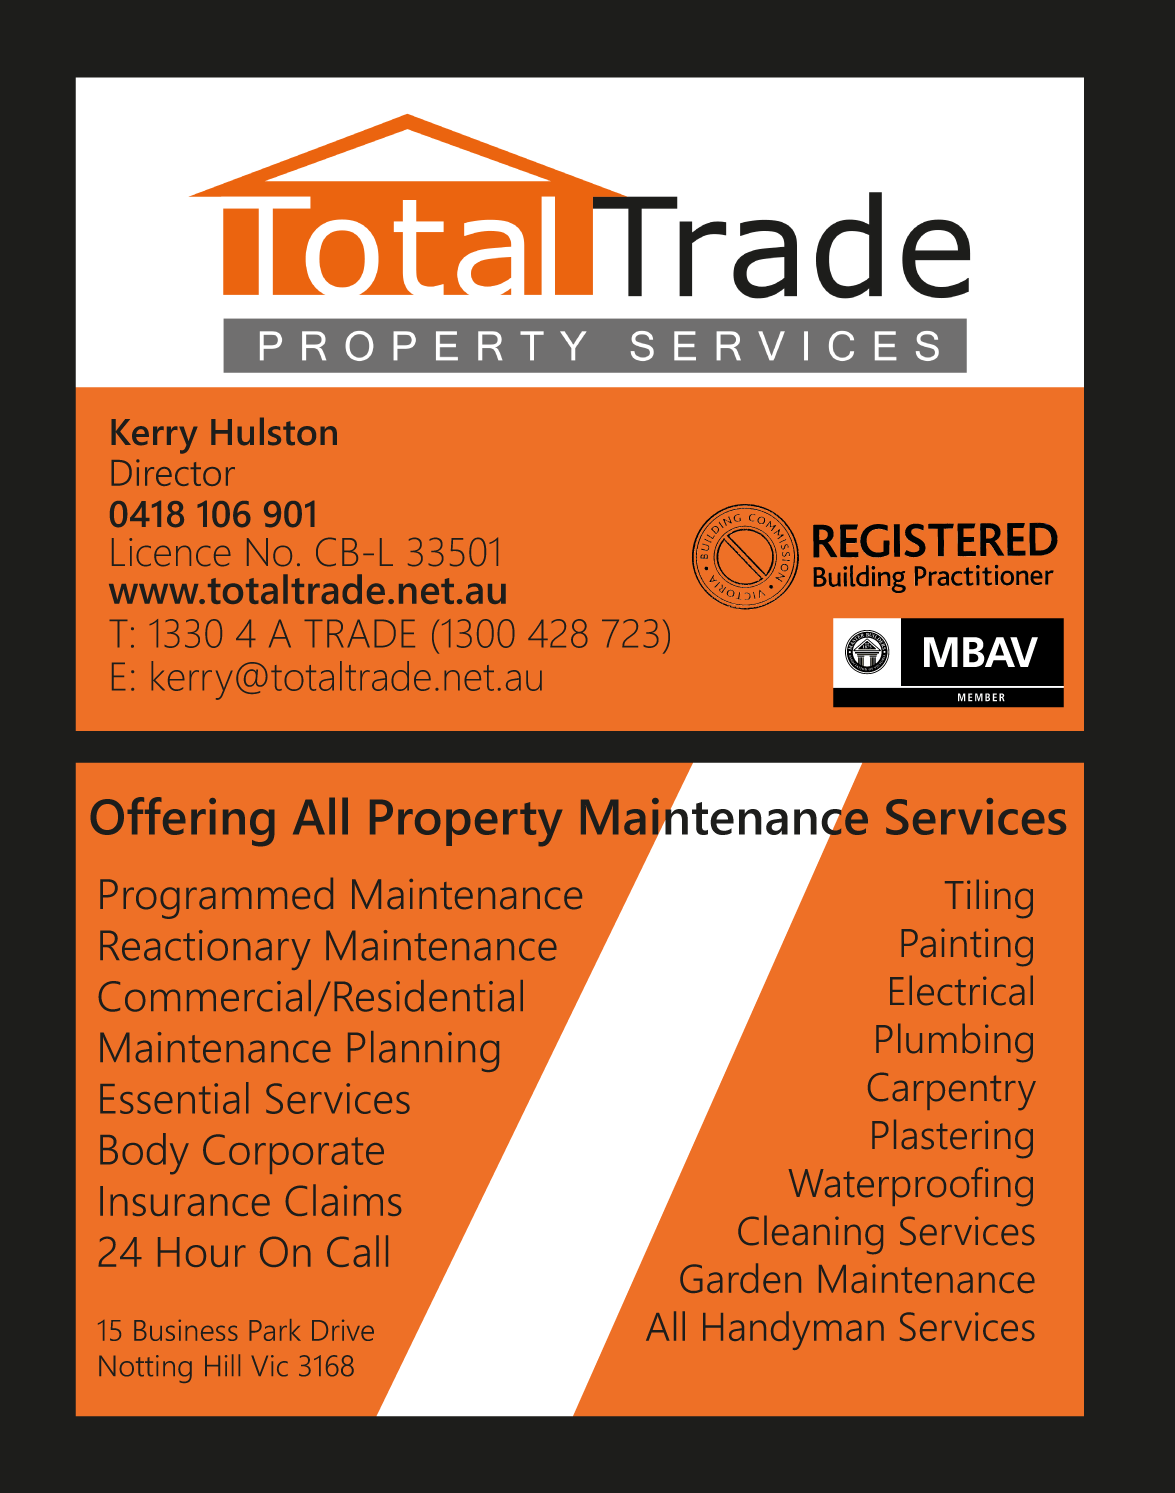 Property Maintenance Business Cards | Arts - Arts